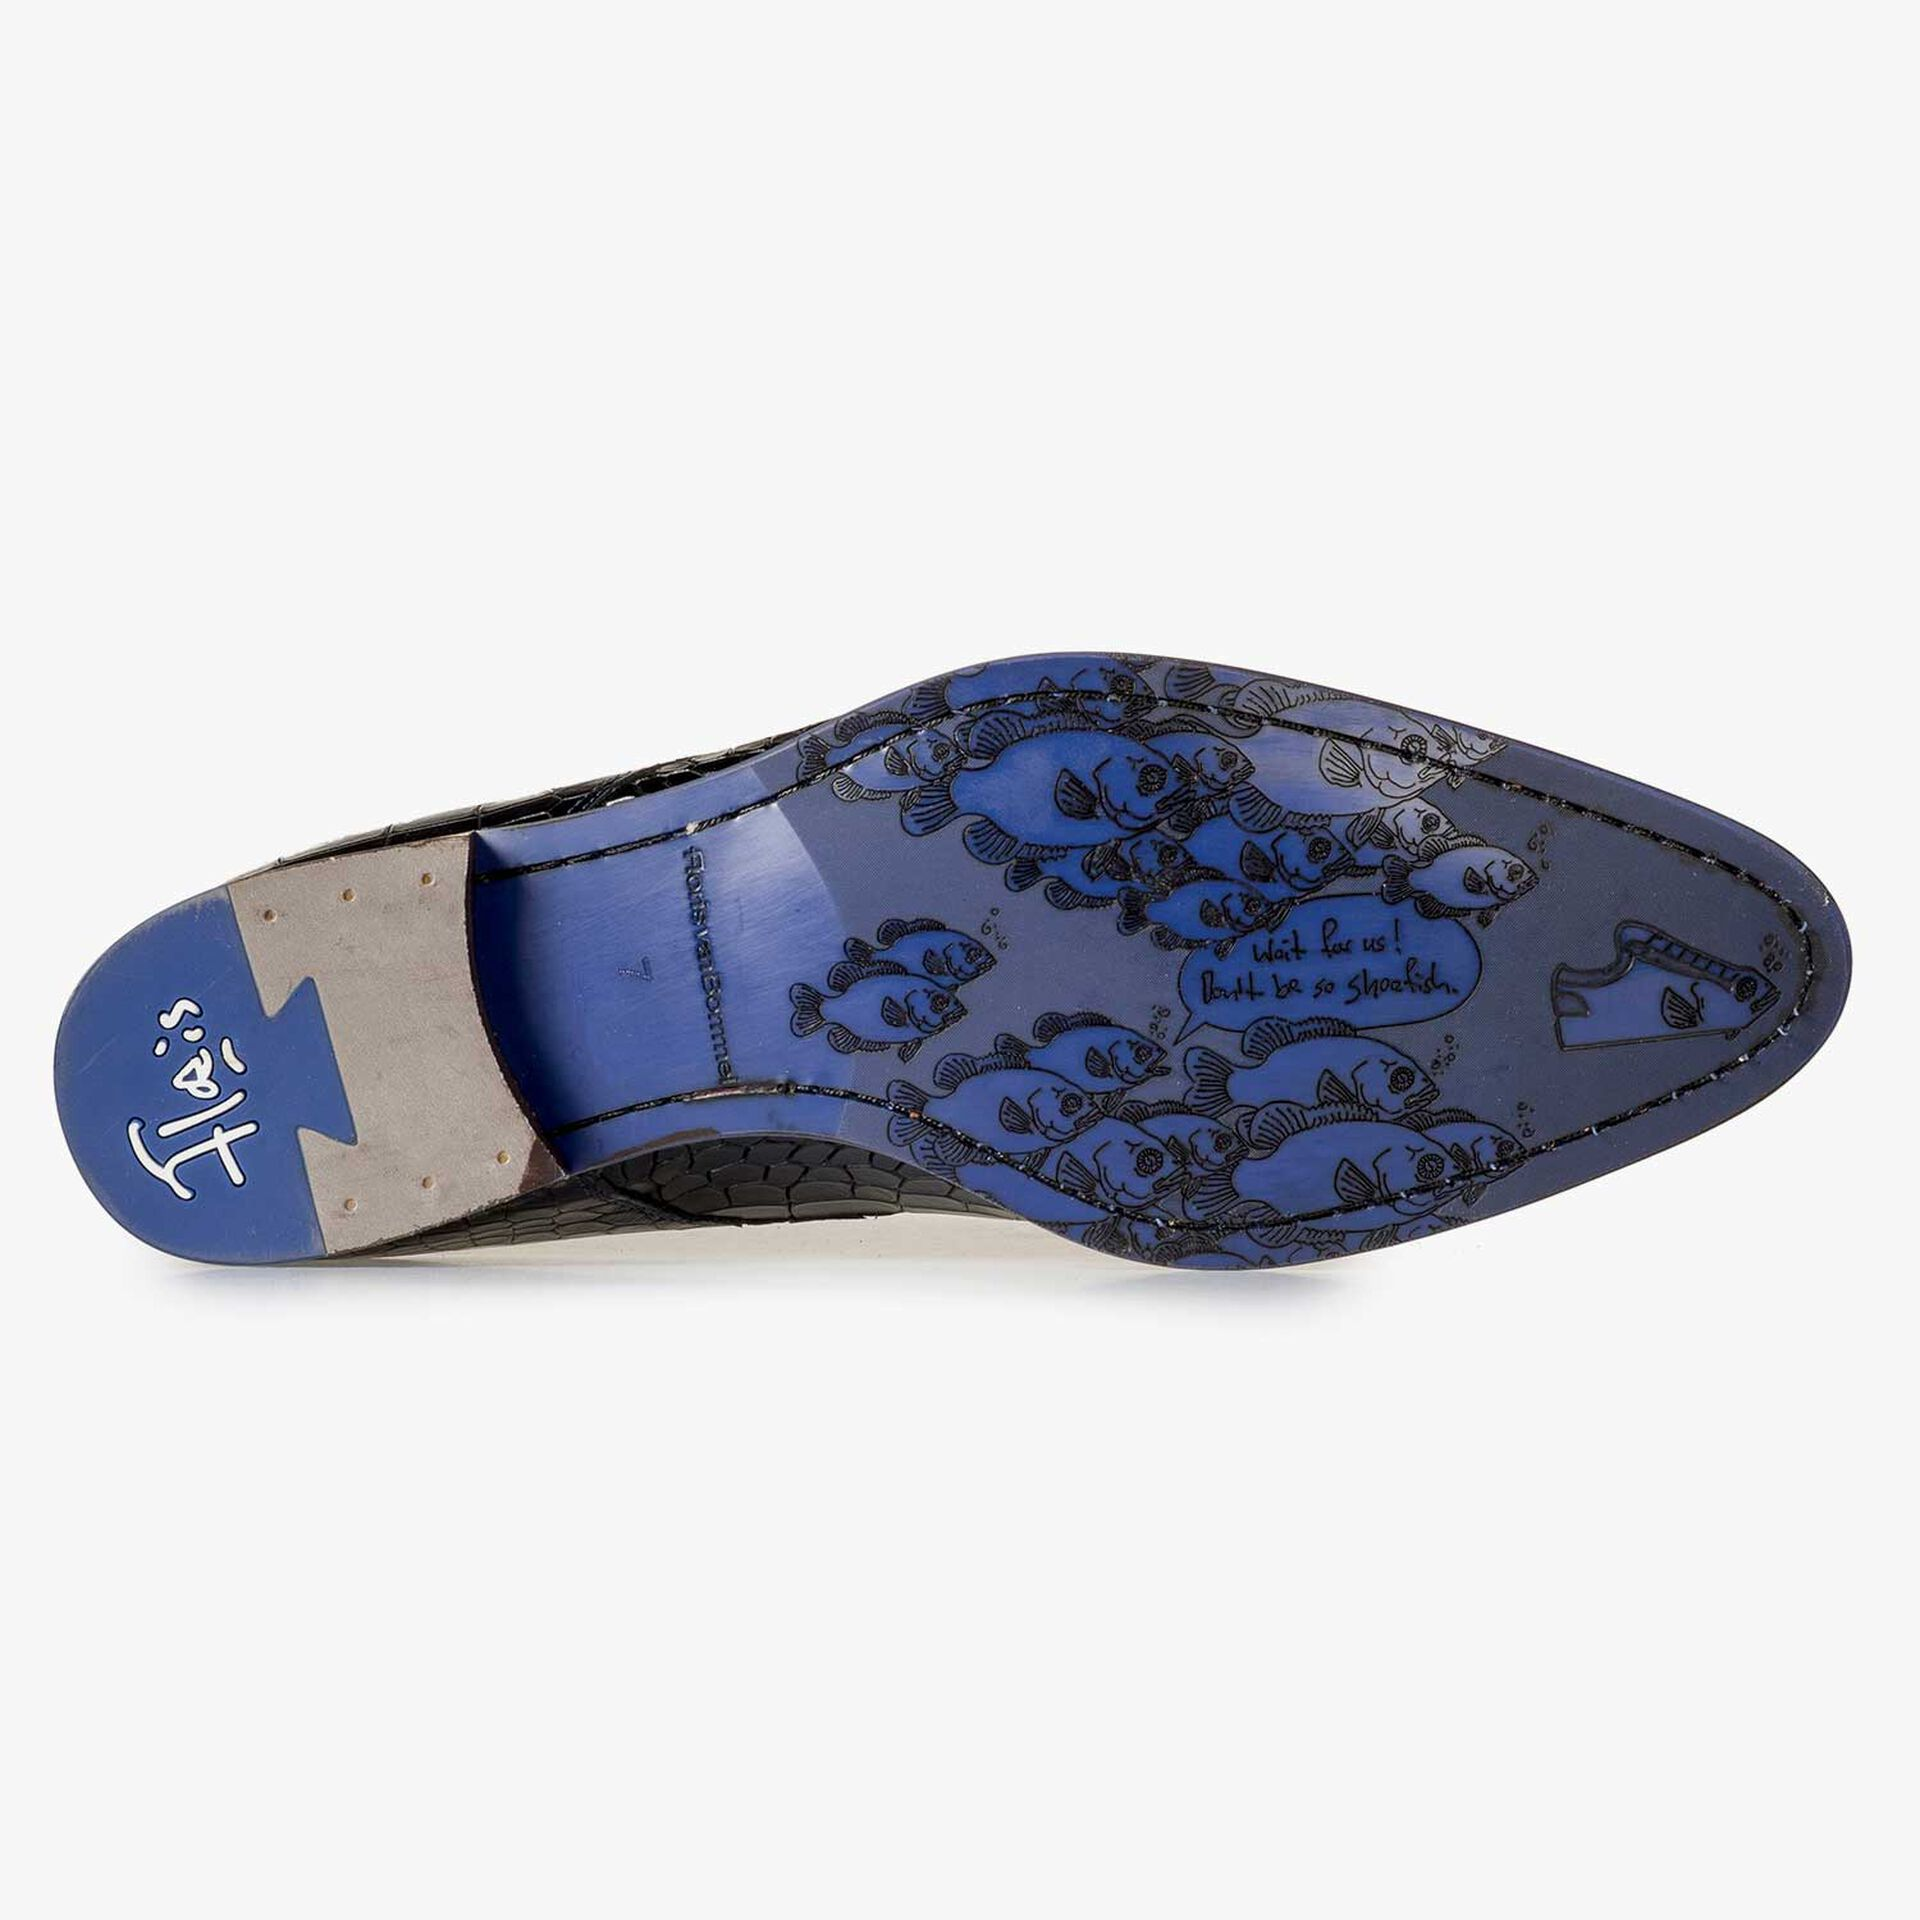 Blue calf's leather lace shoe with croco print